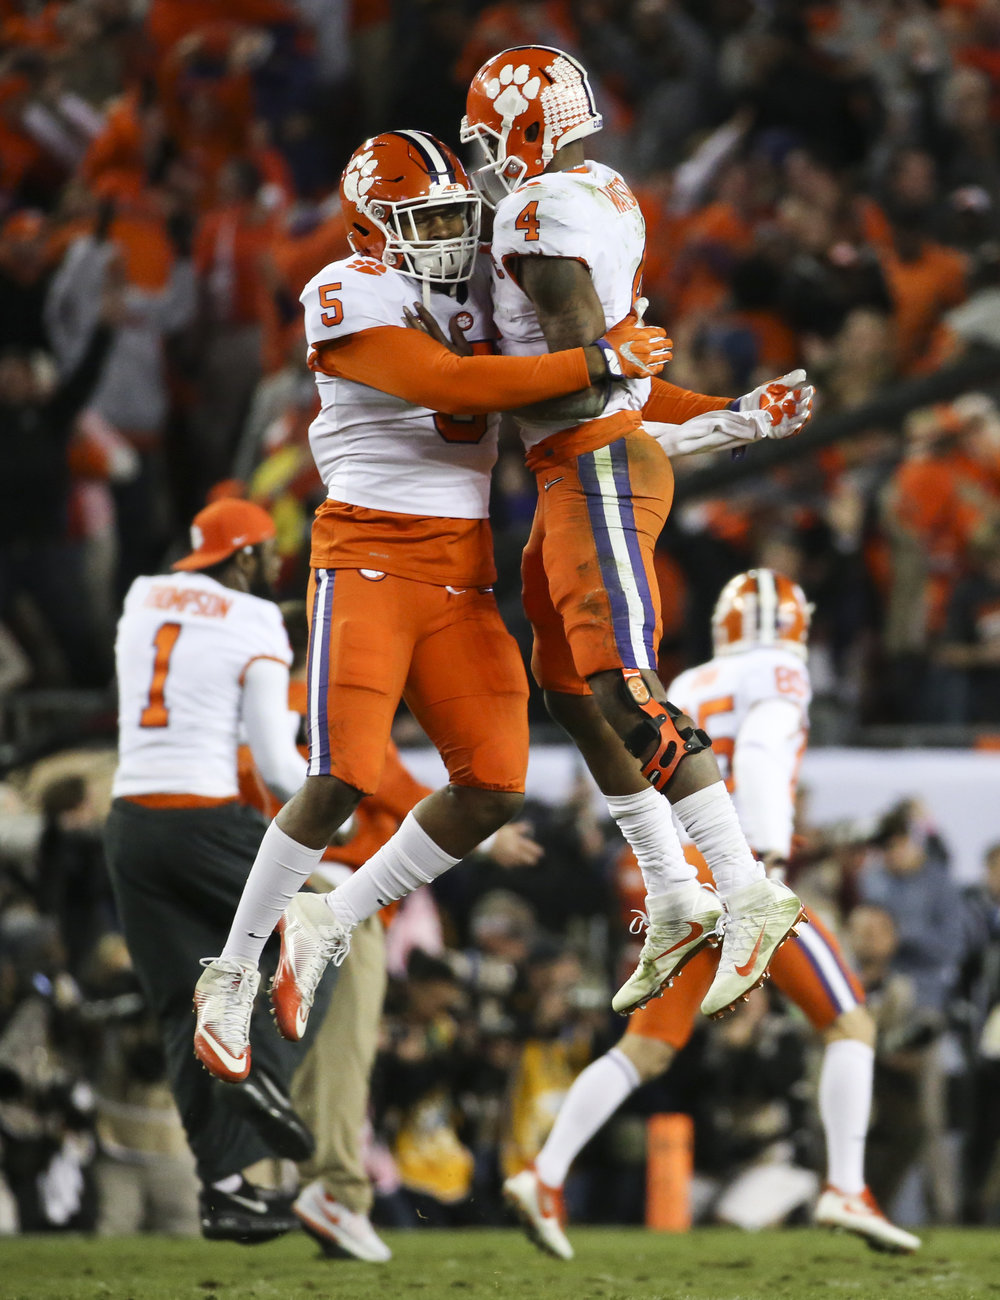 Clemson Tigers linebacker Shaq Smith (5) and quarterback Deshaun Watson (4) celebrate the game winning touchdown during the fourth quarter of the College Football Playoff National Championship on Monday January 9, 2017 at Raymond James Stadium, in Tampa, Fla. Clemson Tigers defeated the Alabama Crimson Tide 35 to 31.